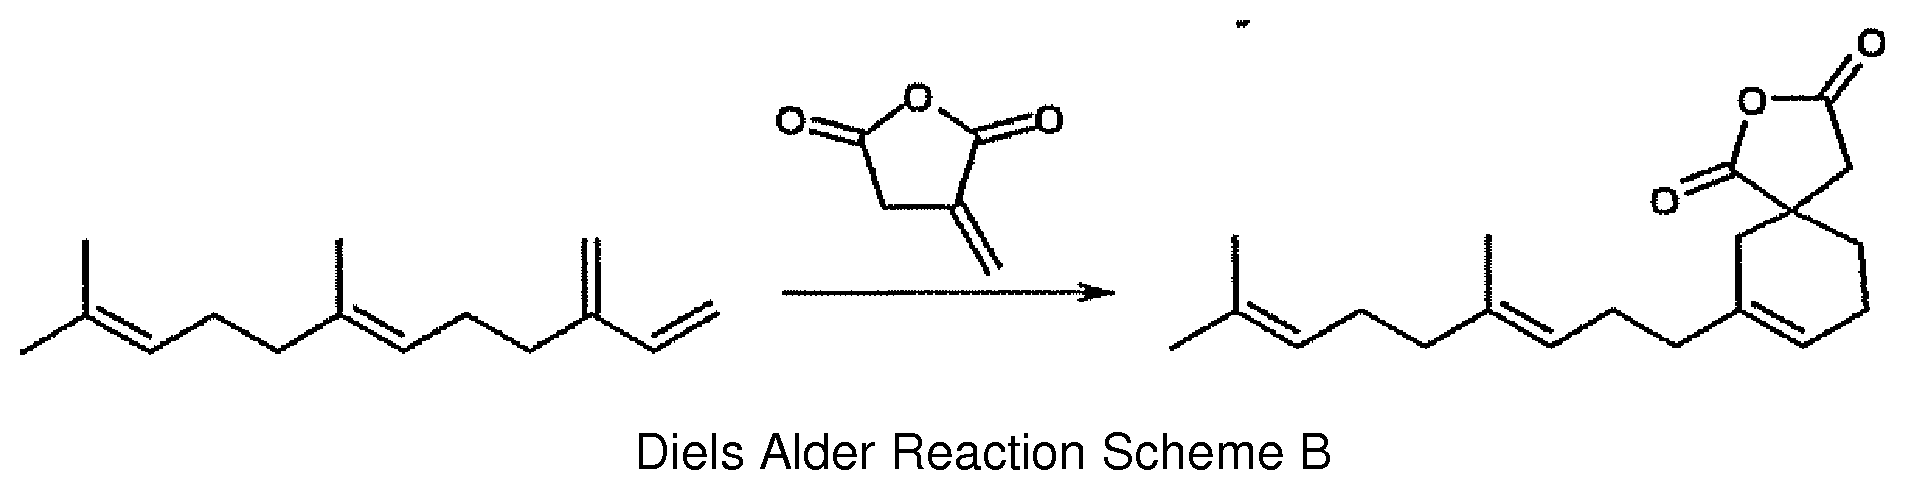 the diels alder reaction of anthracene with maleic anhydride Chm 226 diels-alder lab the diels-alder reaction of anthracene with maleic anhydride reference: wigal, c t signature labs series: chemistry lab experiments chem 226.